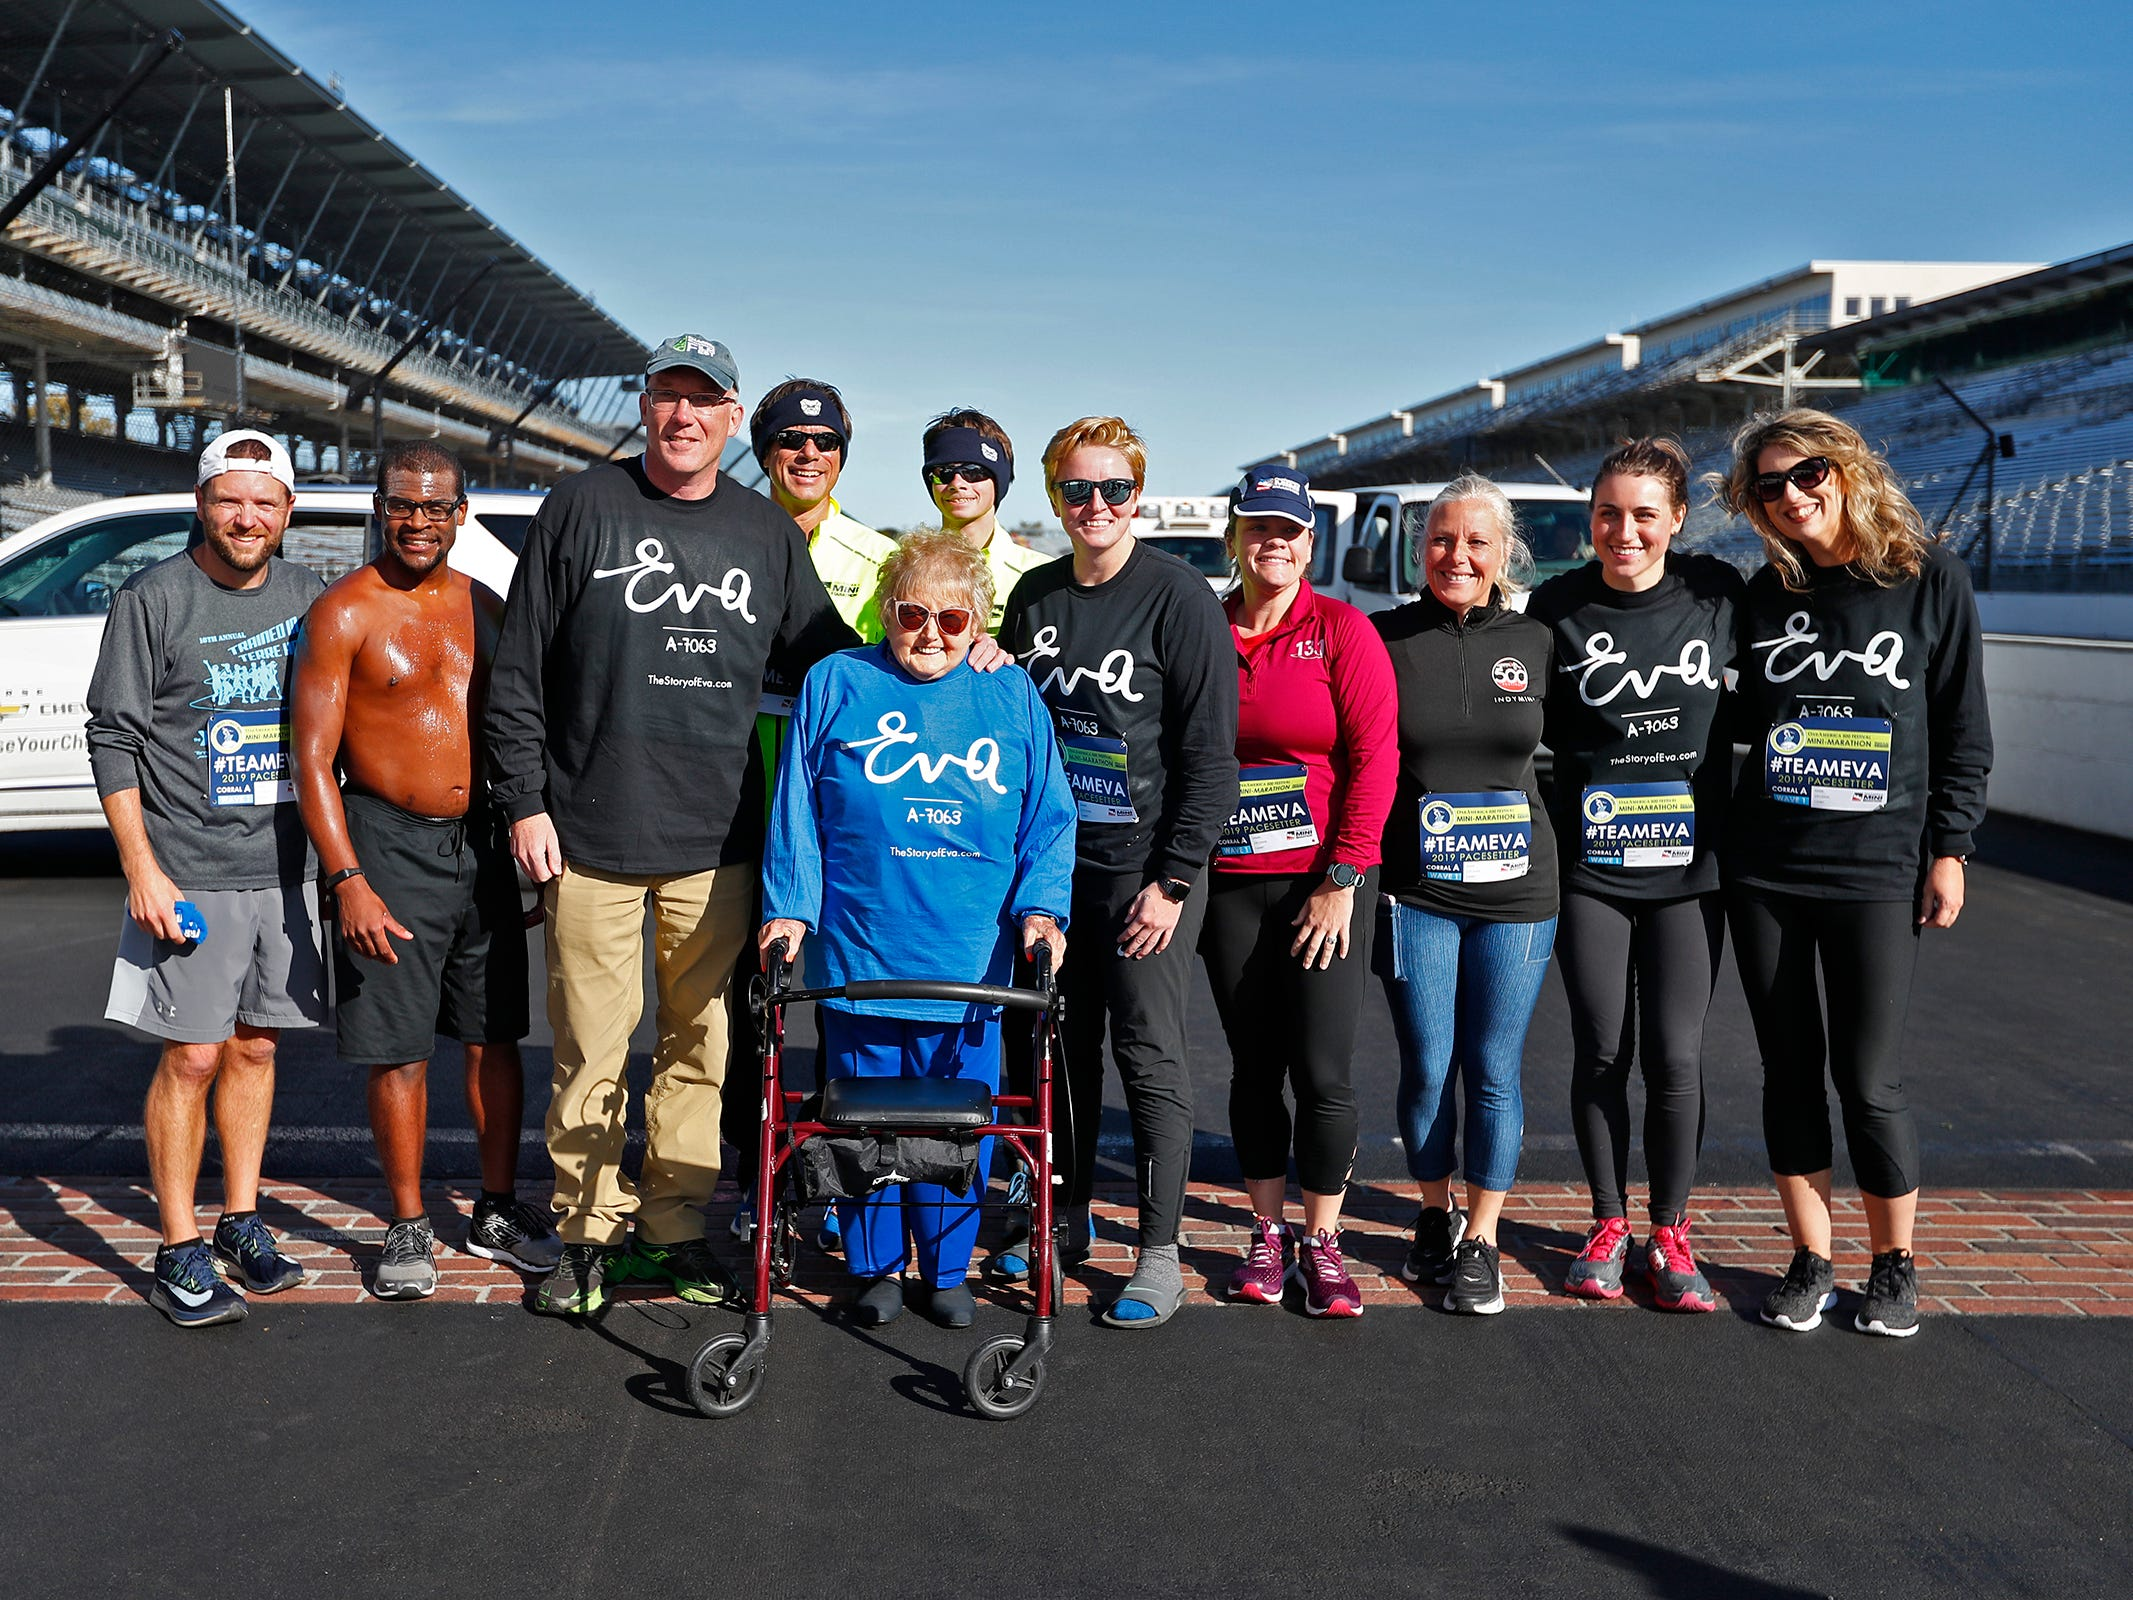 Holocaust survivor Eva Kor, center, joins others at the Indianapolis Motor Speedway Yard of Bricks for photos, Wednesday, Oct. 24, 2018, during the pace-setting run for the 2019 OneAmerica 500 Festival Mini-Marathon.  The 500 Festival will donate $1 to the CANDLES Holocaust Museum in Terre Haute for every mini-marathon participant who finishes the 2019 race in a better time than Team Eva.  Kor ran the very last of the relay race.